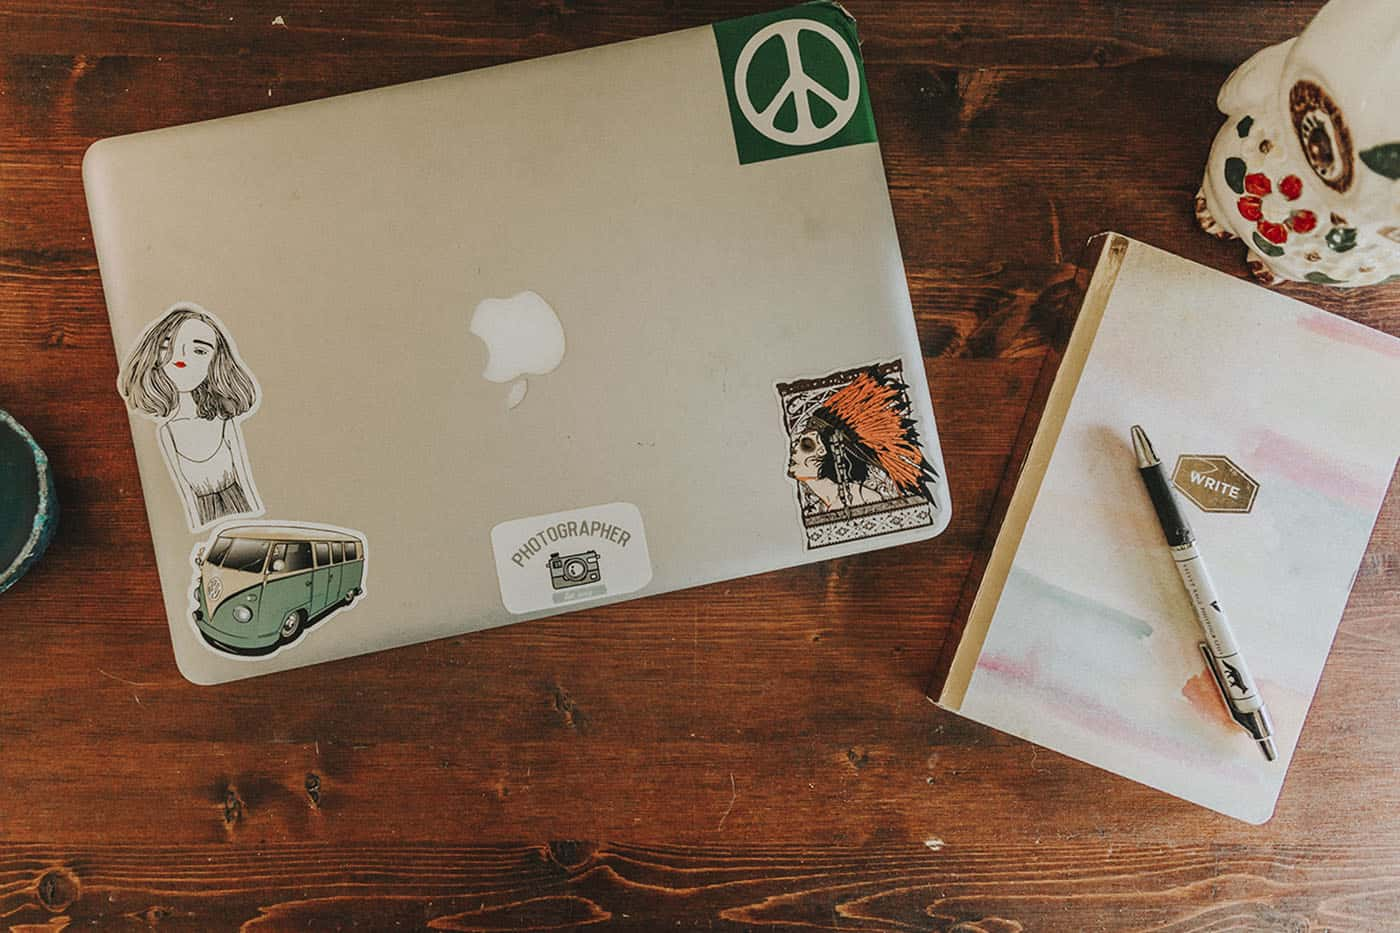 Thesesimple, actionable blogging tips for photographers will make your blog easy to write and fun to read - even if you hate writing!